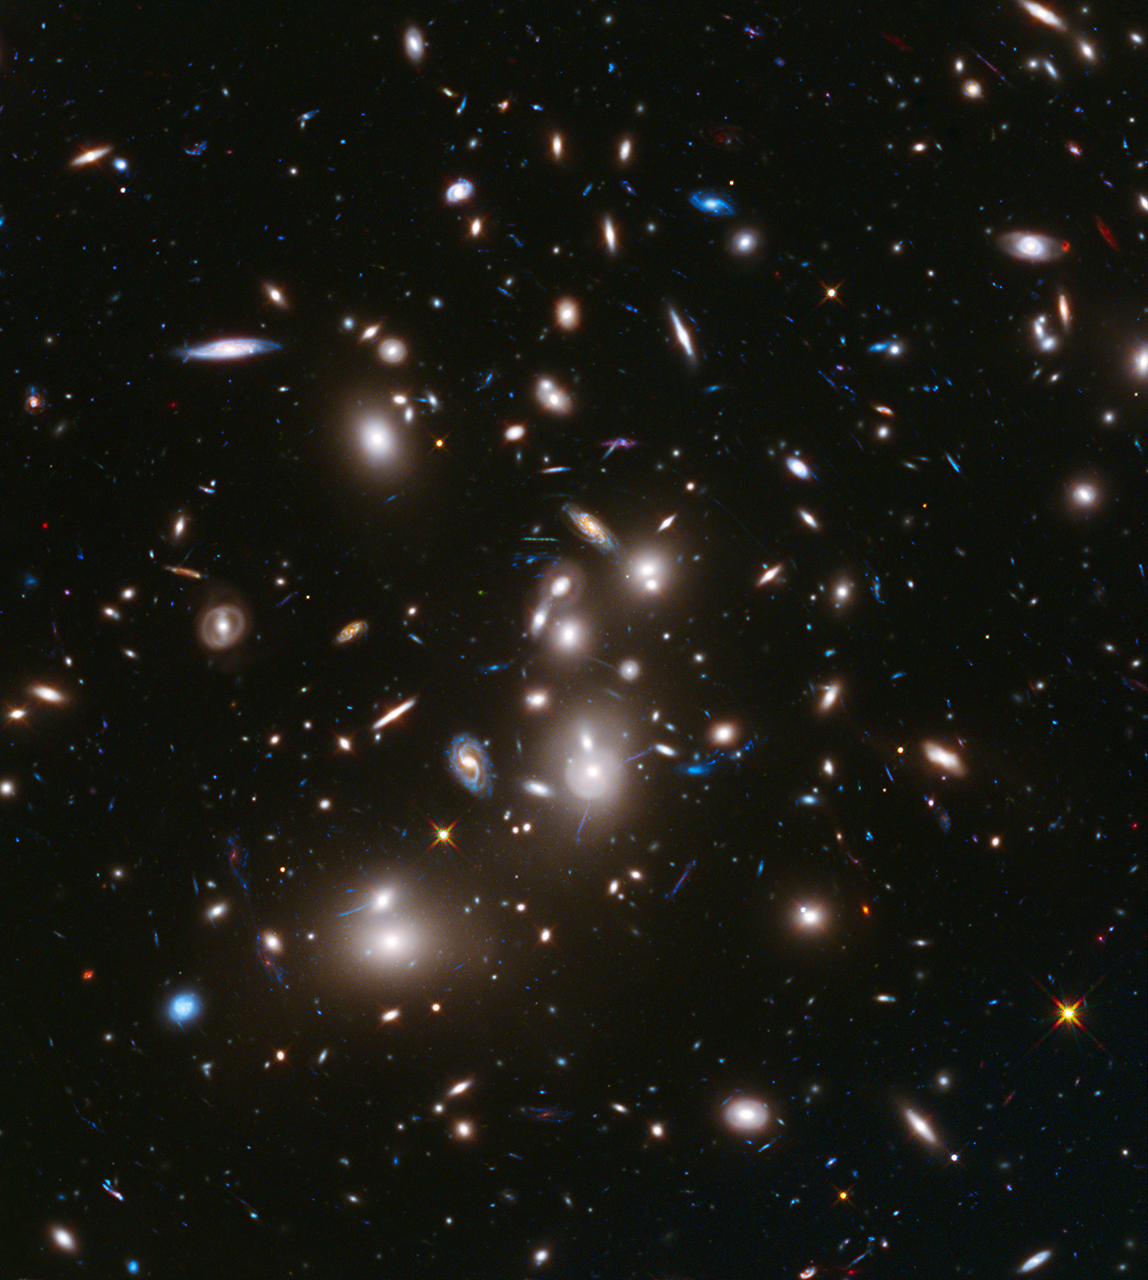 Hubble Space Telescope view of Abell 2744, a massive galaxy cluster